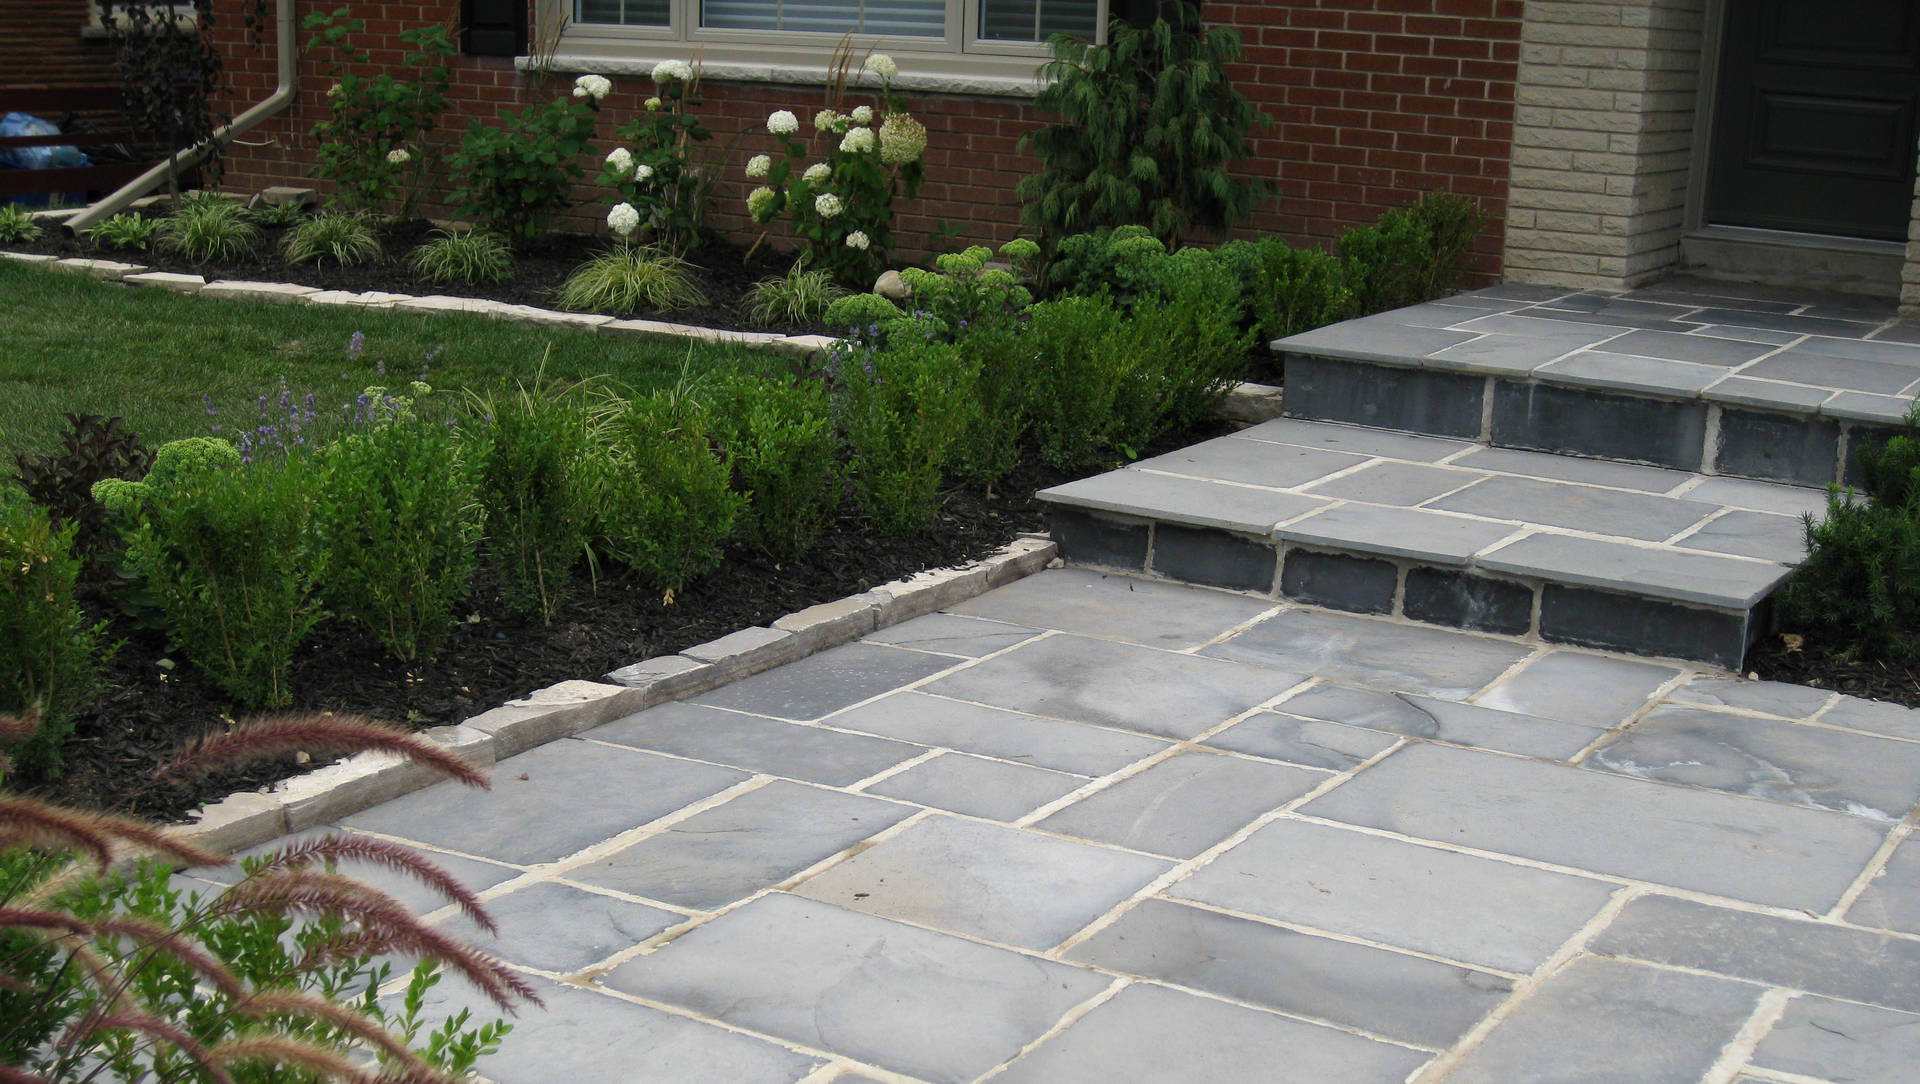 Stone steps and front yard landscaping. Modern landscaping / hardscaping project in London Ontario.